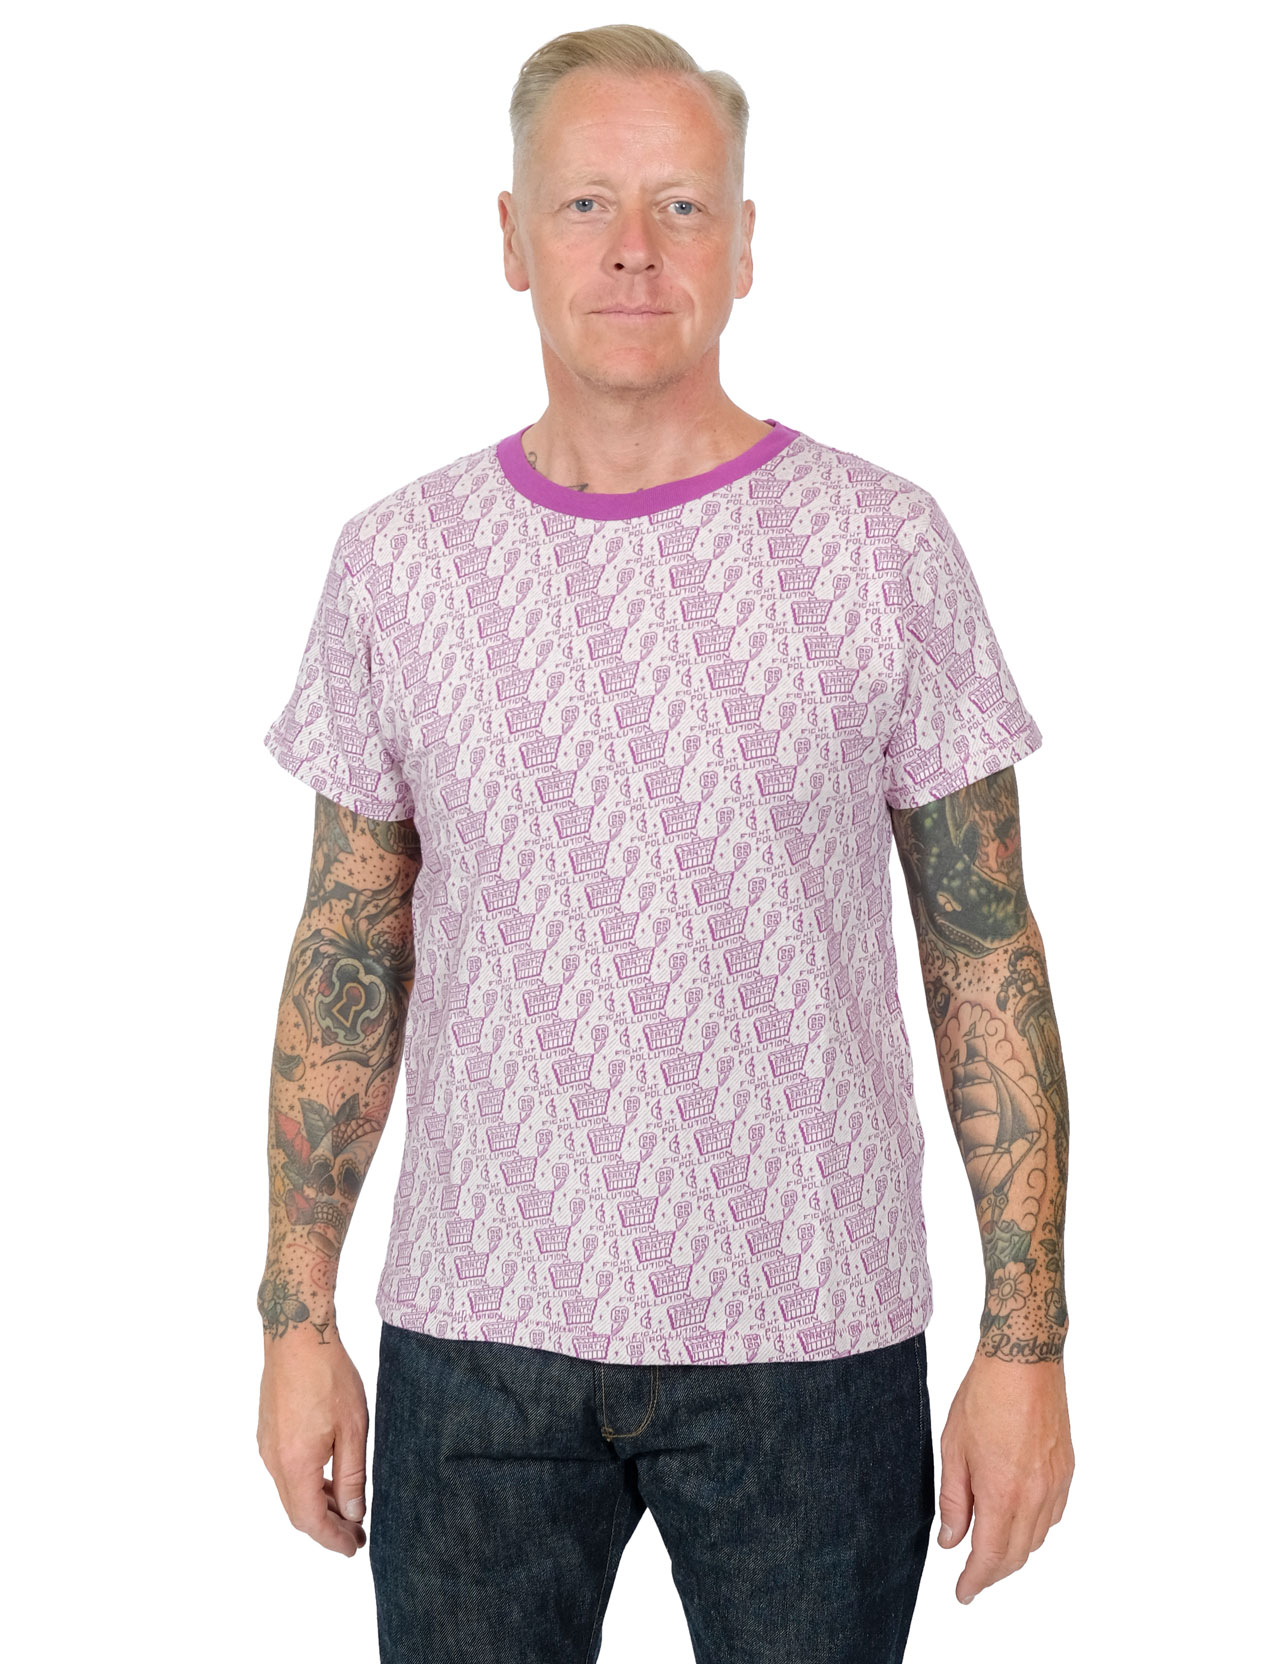 Levis Vintage Clothing - Earth Graphic Tee - Purple